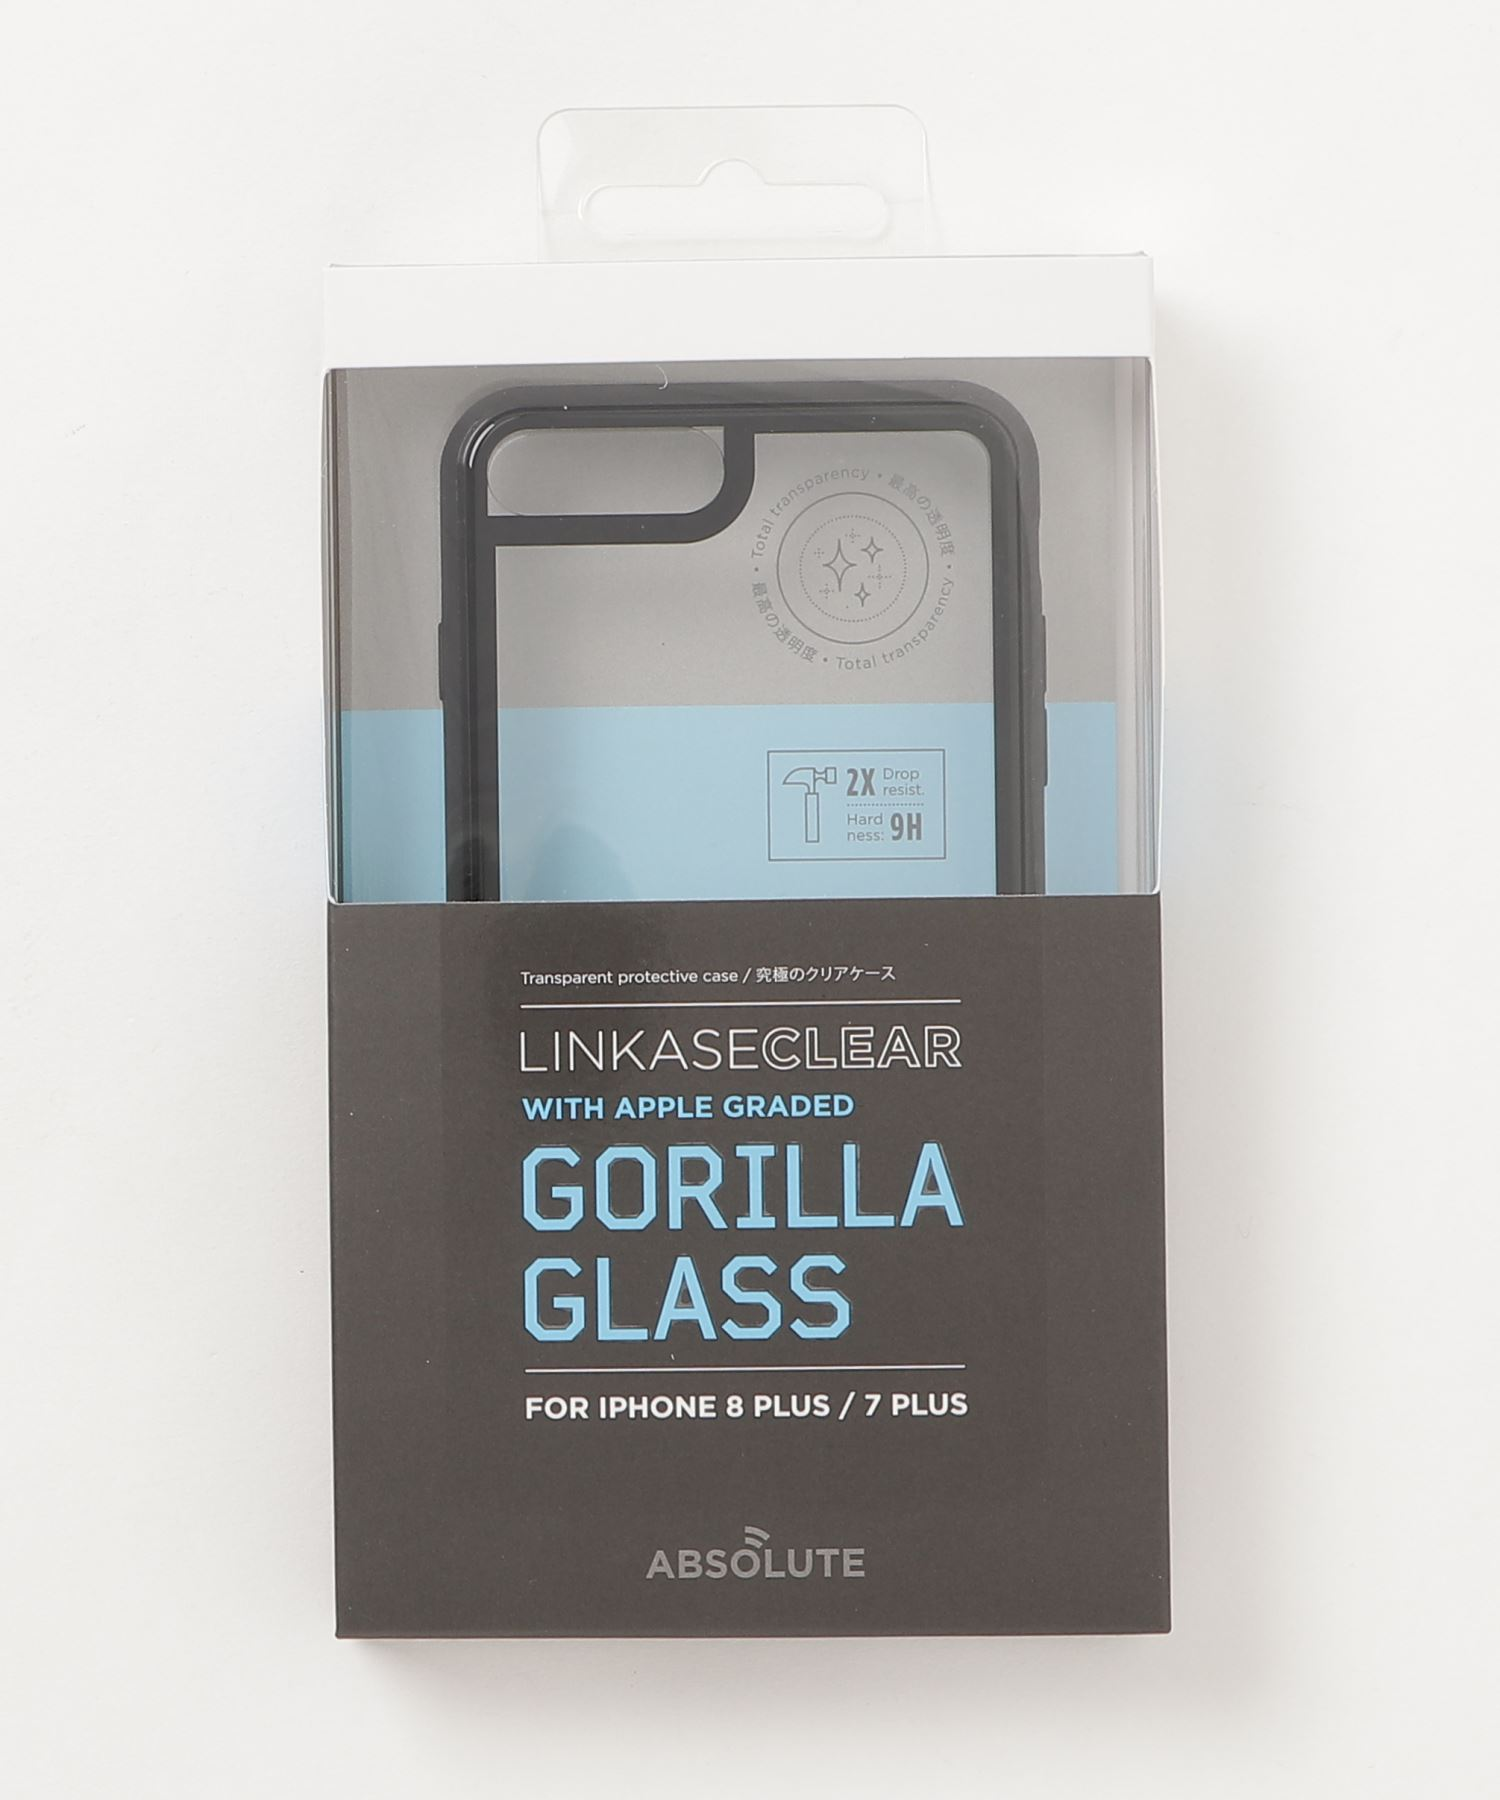 ABSOLUTE technology - LINKASE CLEAR / Gorilla Glass for iPhone 8Plus/7Plus